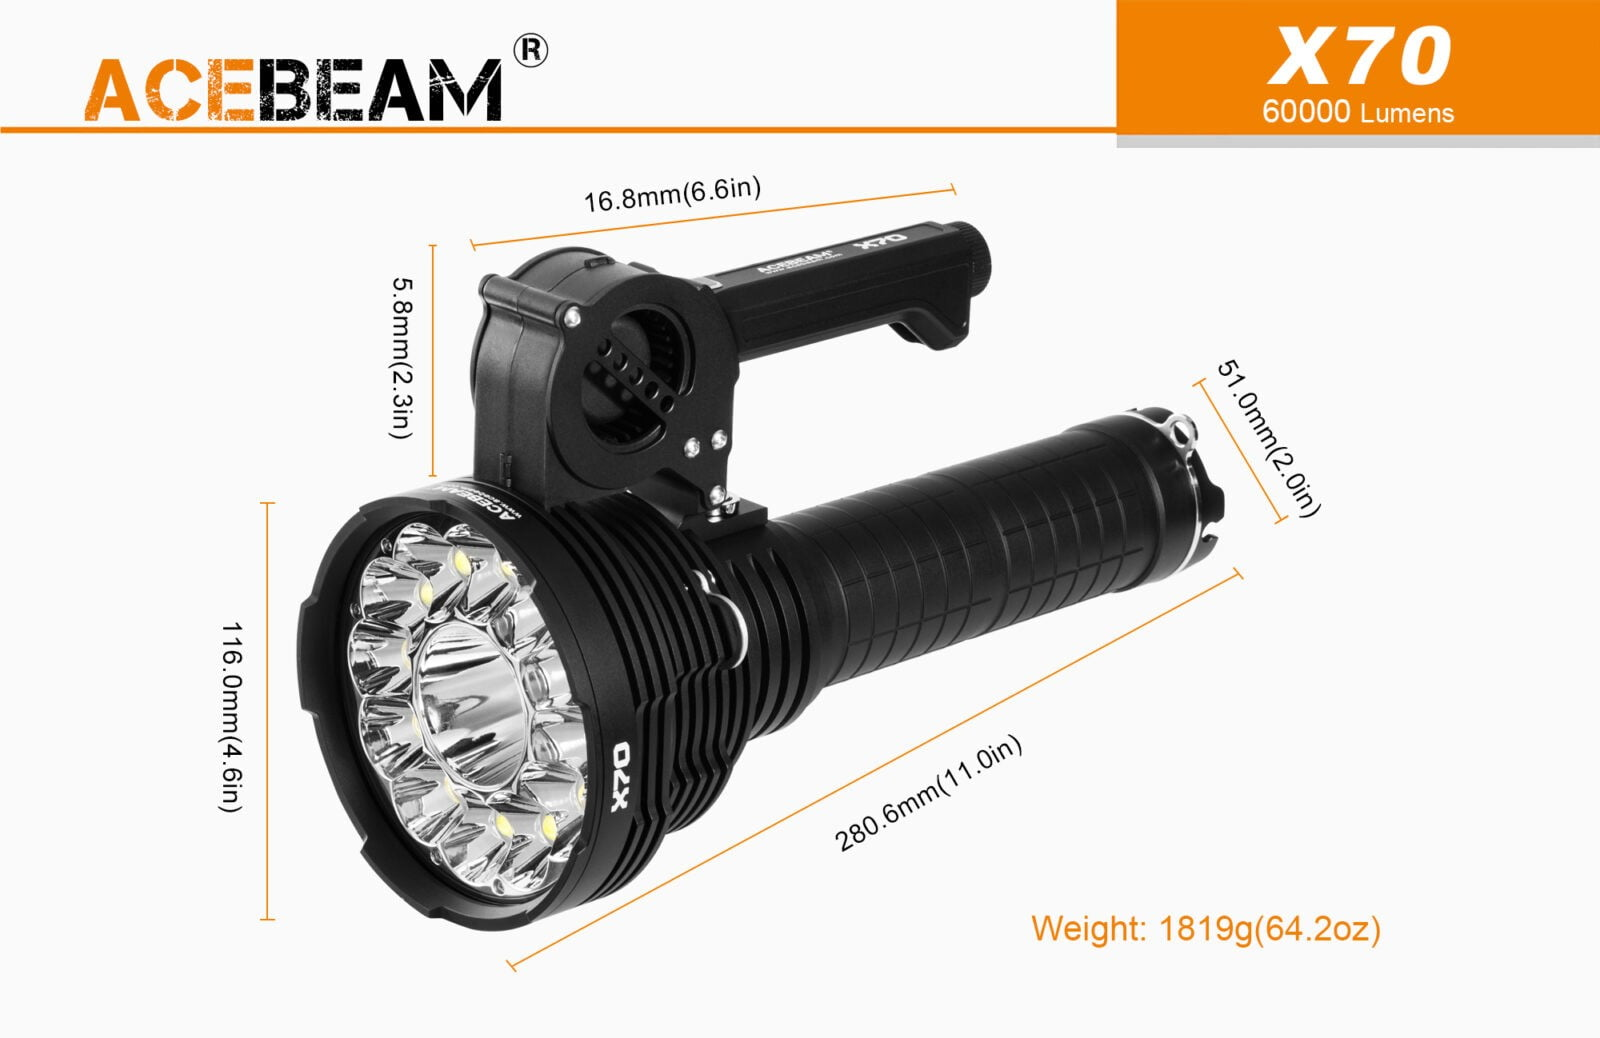 Acebeam X70 Flashlight Torch Searchlight measurements